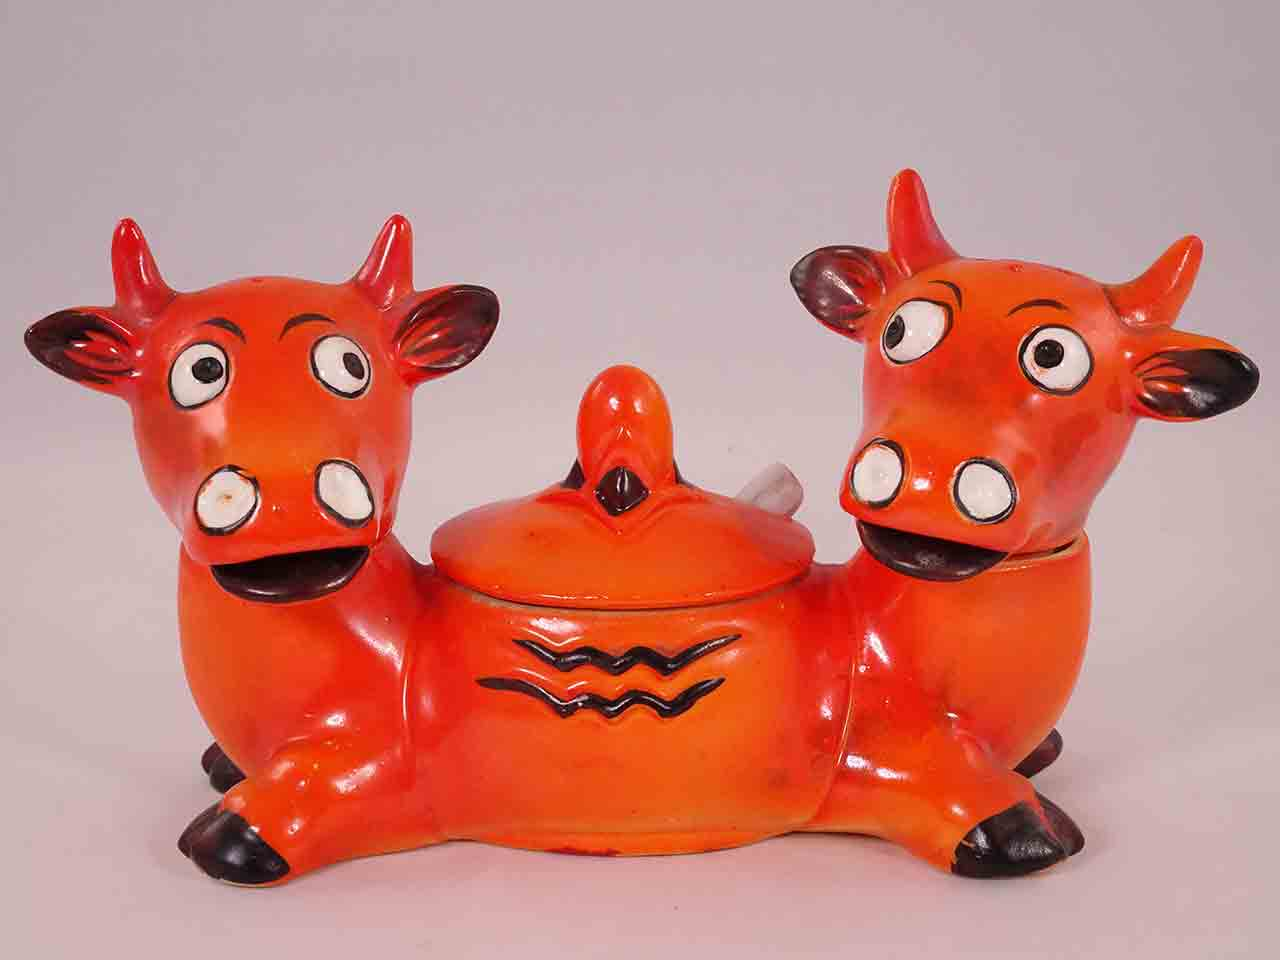 Germany two-headed cow condiment salt and pepper shakers